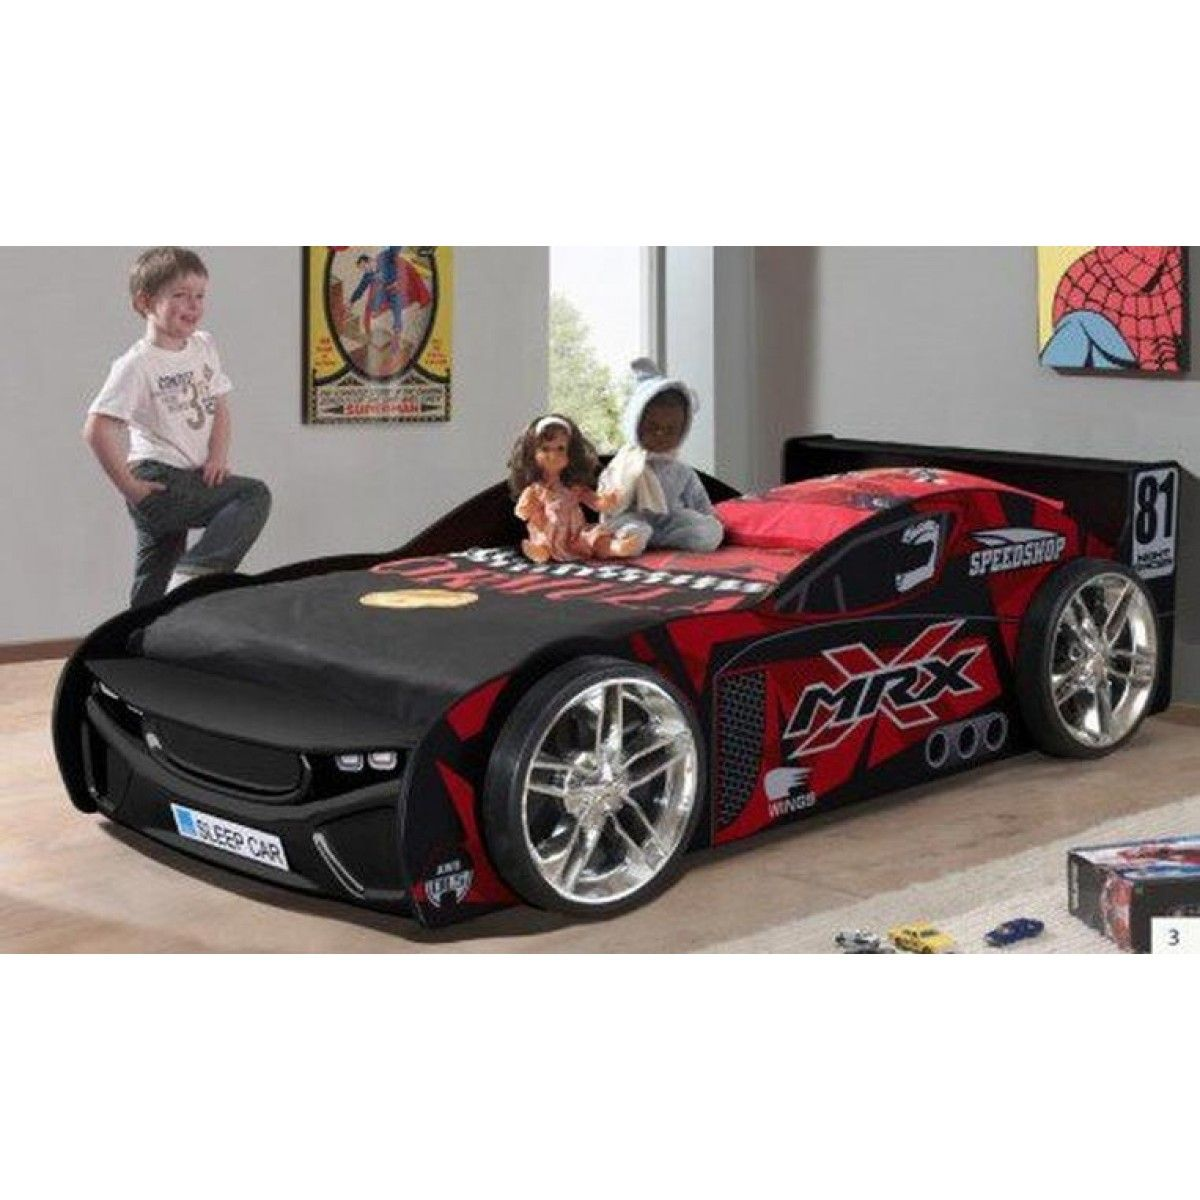 Pin By Interior Design Y On Children Car Bed Race Car Bed Kids Car Bed Kid Beds